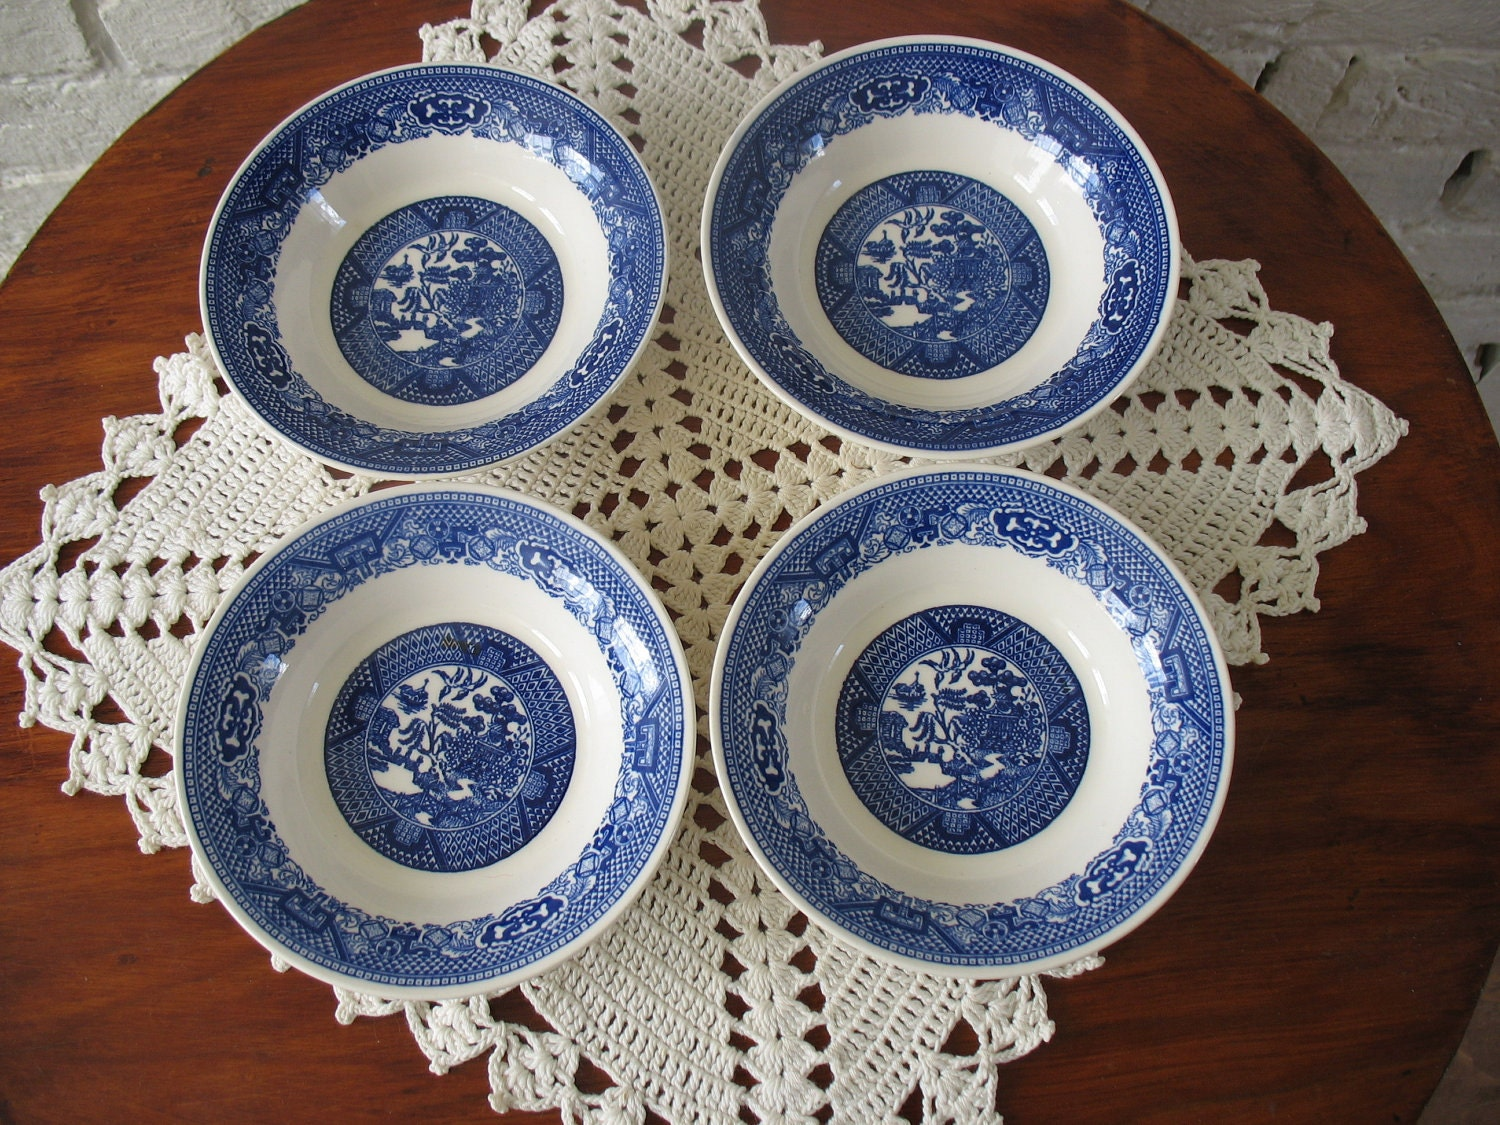 China Vase - Fine China for Sale - Best Prices!